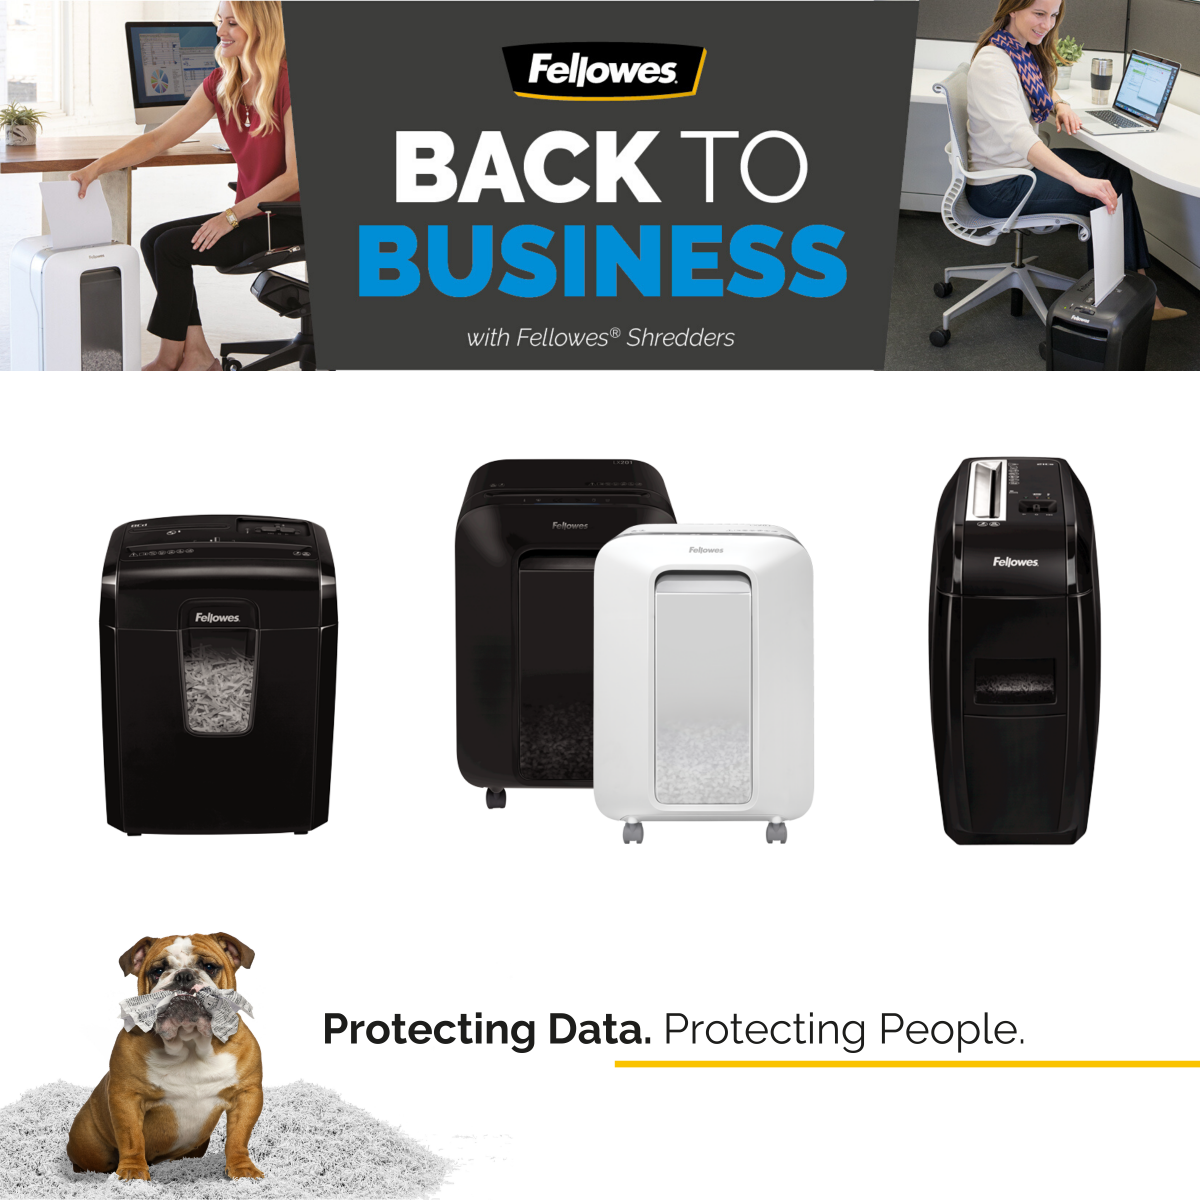 If you're managing confidential documents from your home office, be sure to follow your company's document destruction policy using secure cross cut paper shredders.  Choose a Fellowes ✂ Cross Cut Shredder SHOP NOW ➡️ https://t.co/eEjhyjHFbG . . #BacktoBusiness https://t.co/m3amaSYRul